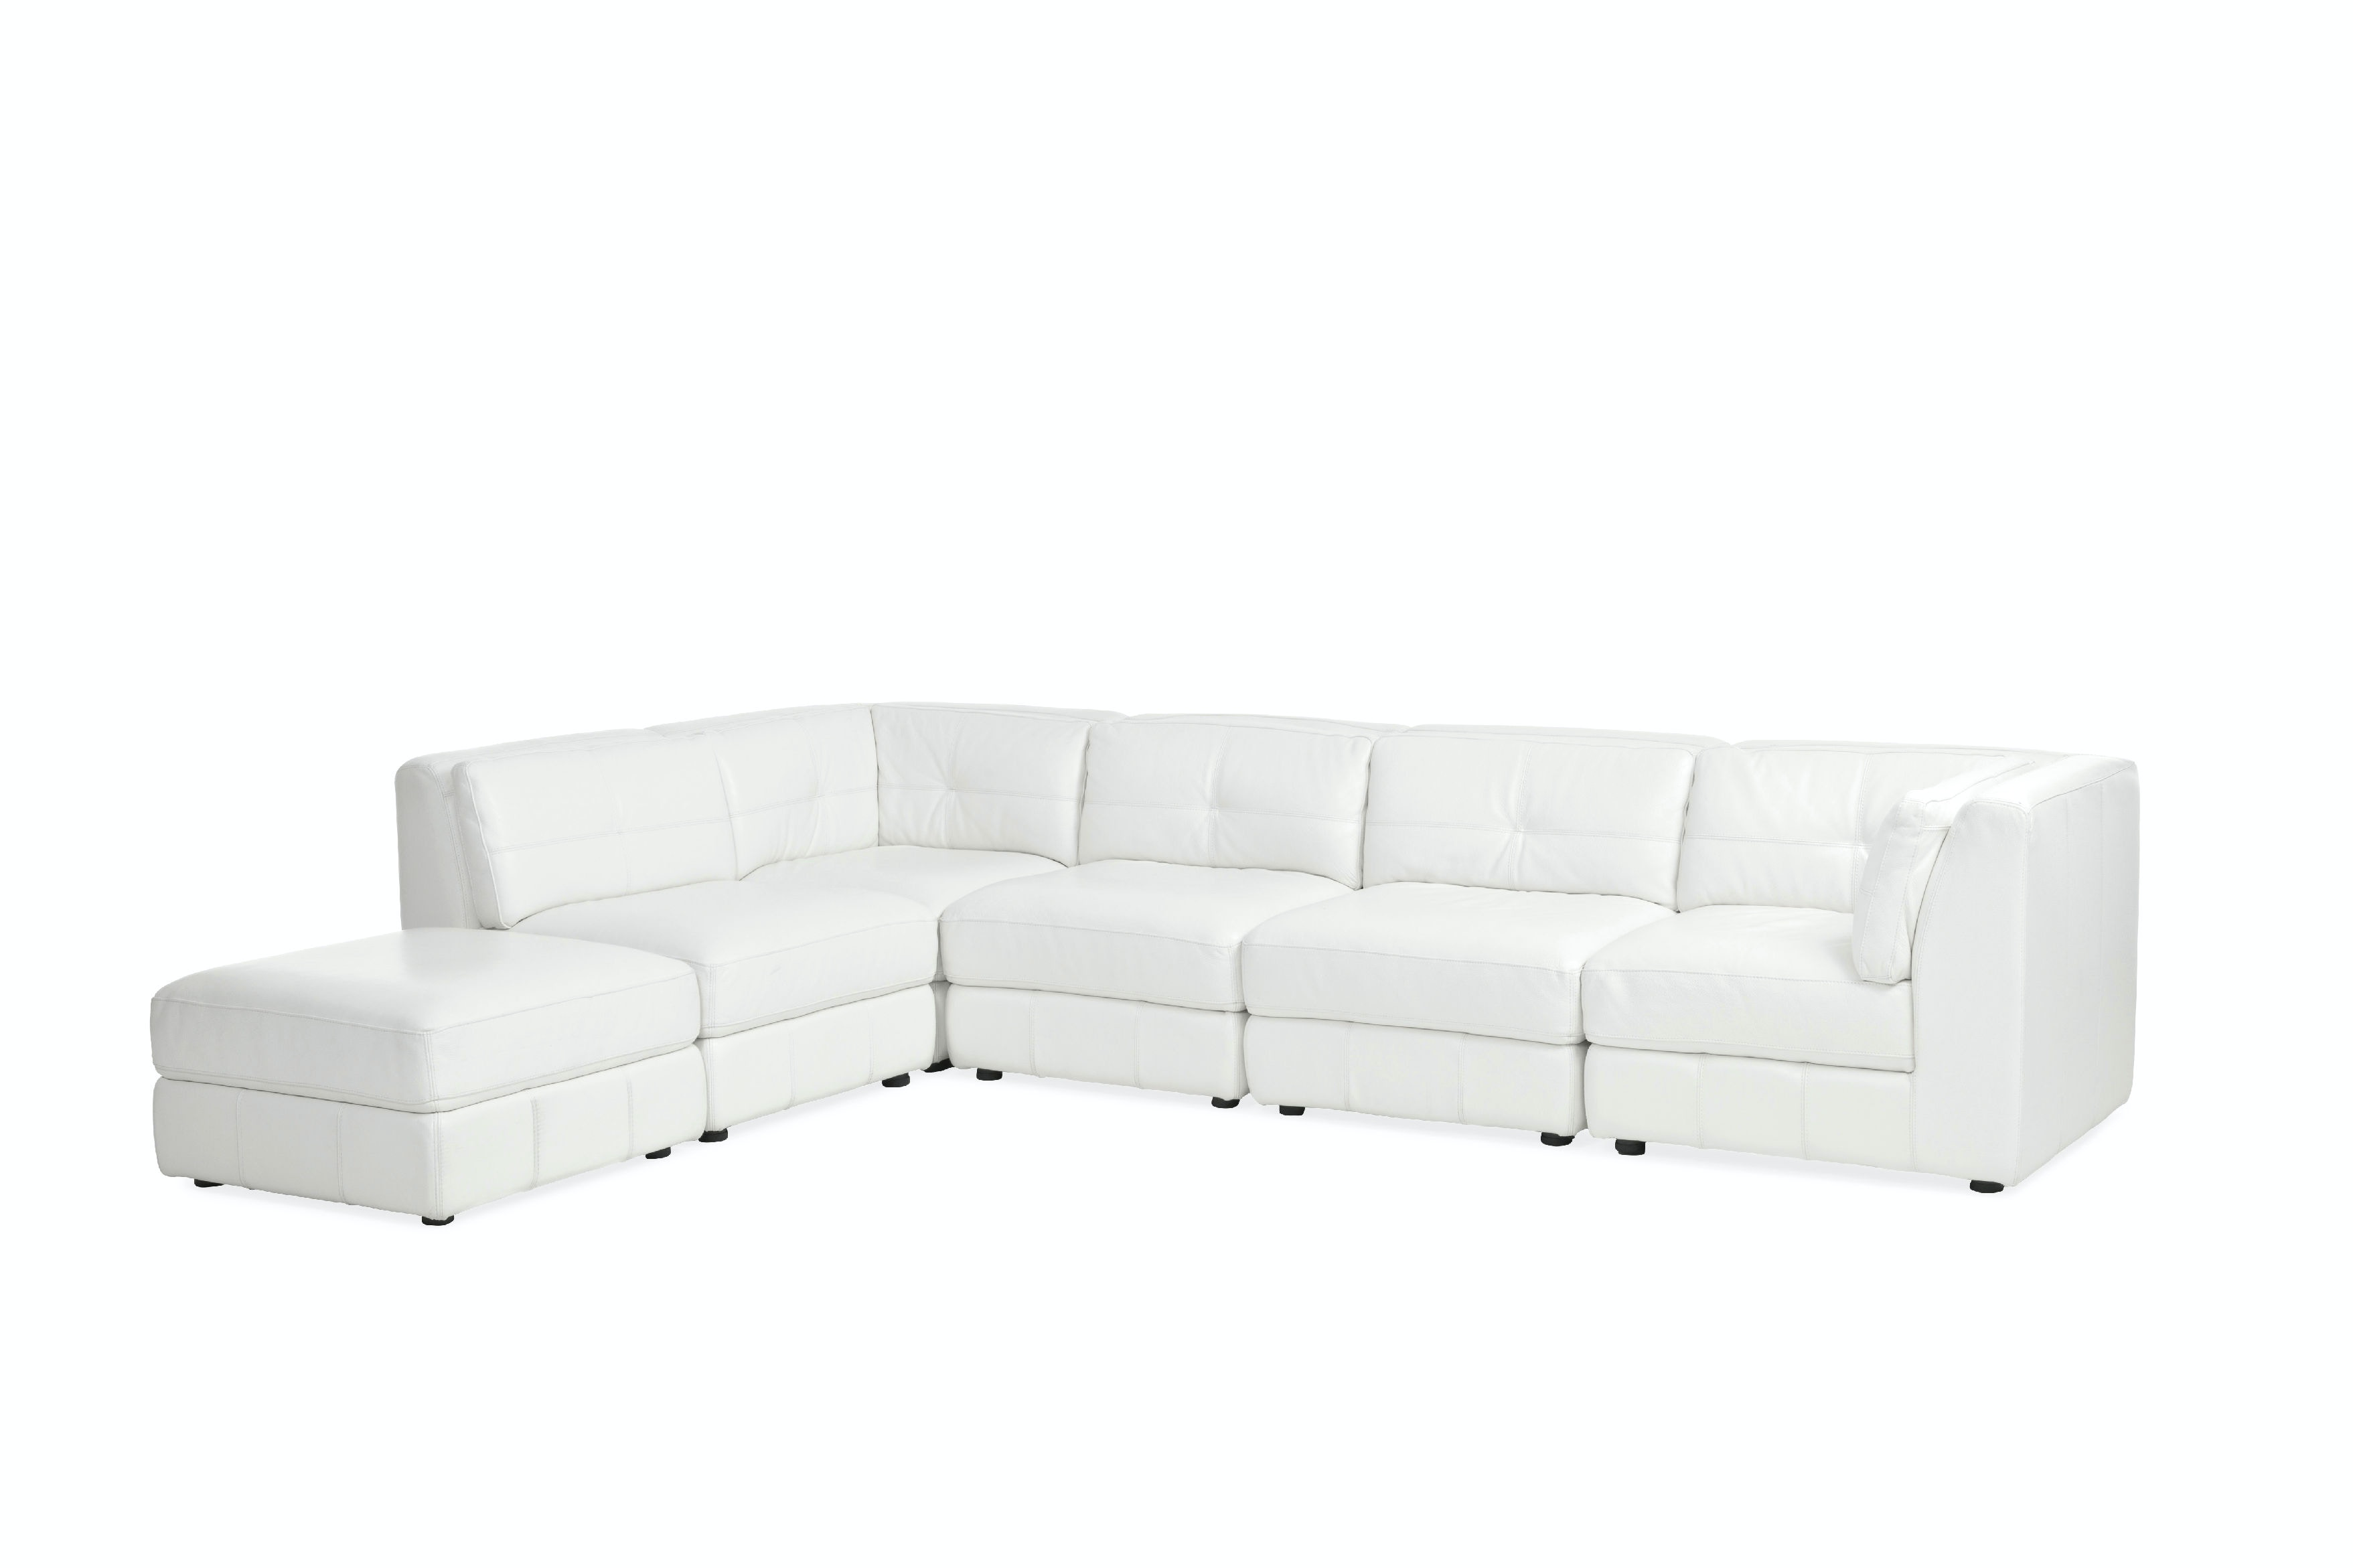 6 Piece Sectional Sofa Leather Full Size Sofas Piece Sectional